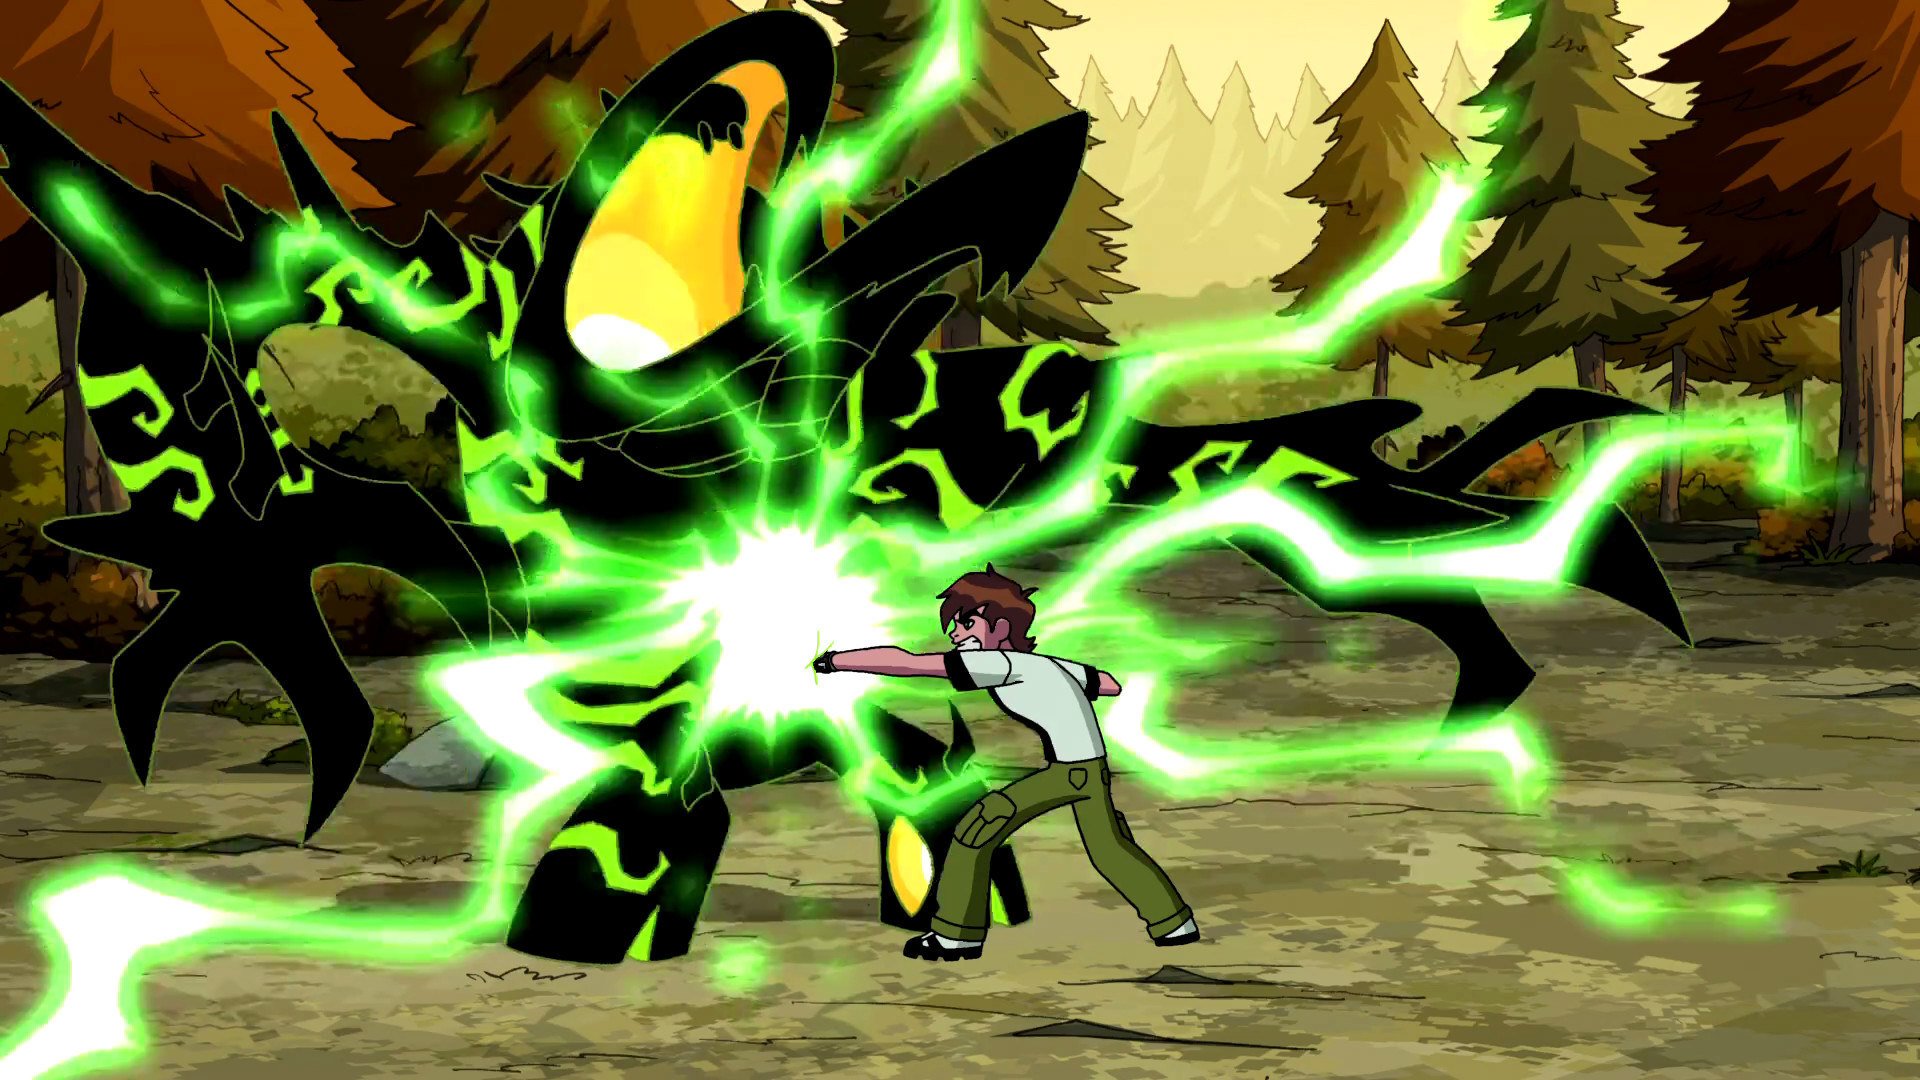 1920x1080  Image - Ben using his overloaded Omnitrix on Malware.png | Ben 10  Wiki | FANDOM powered by Wikia